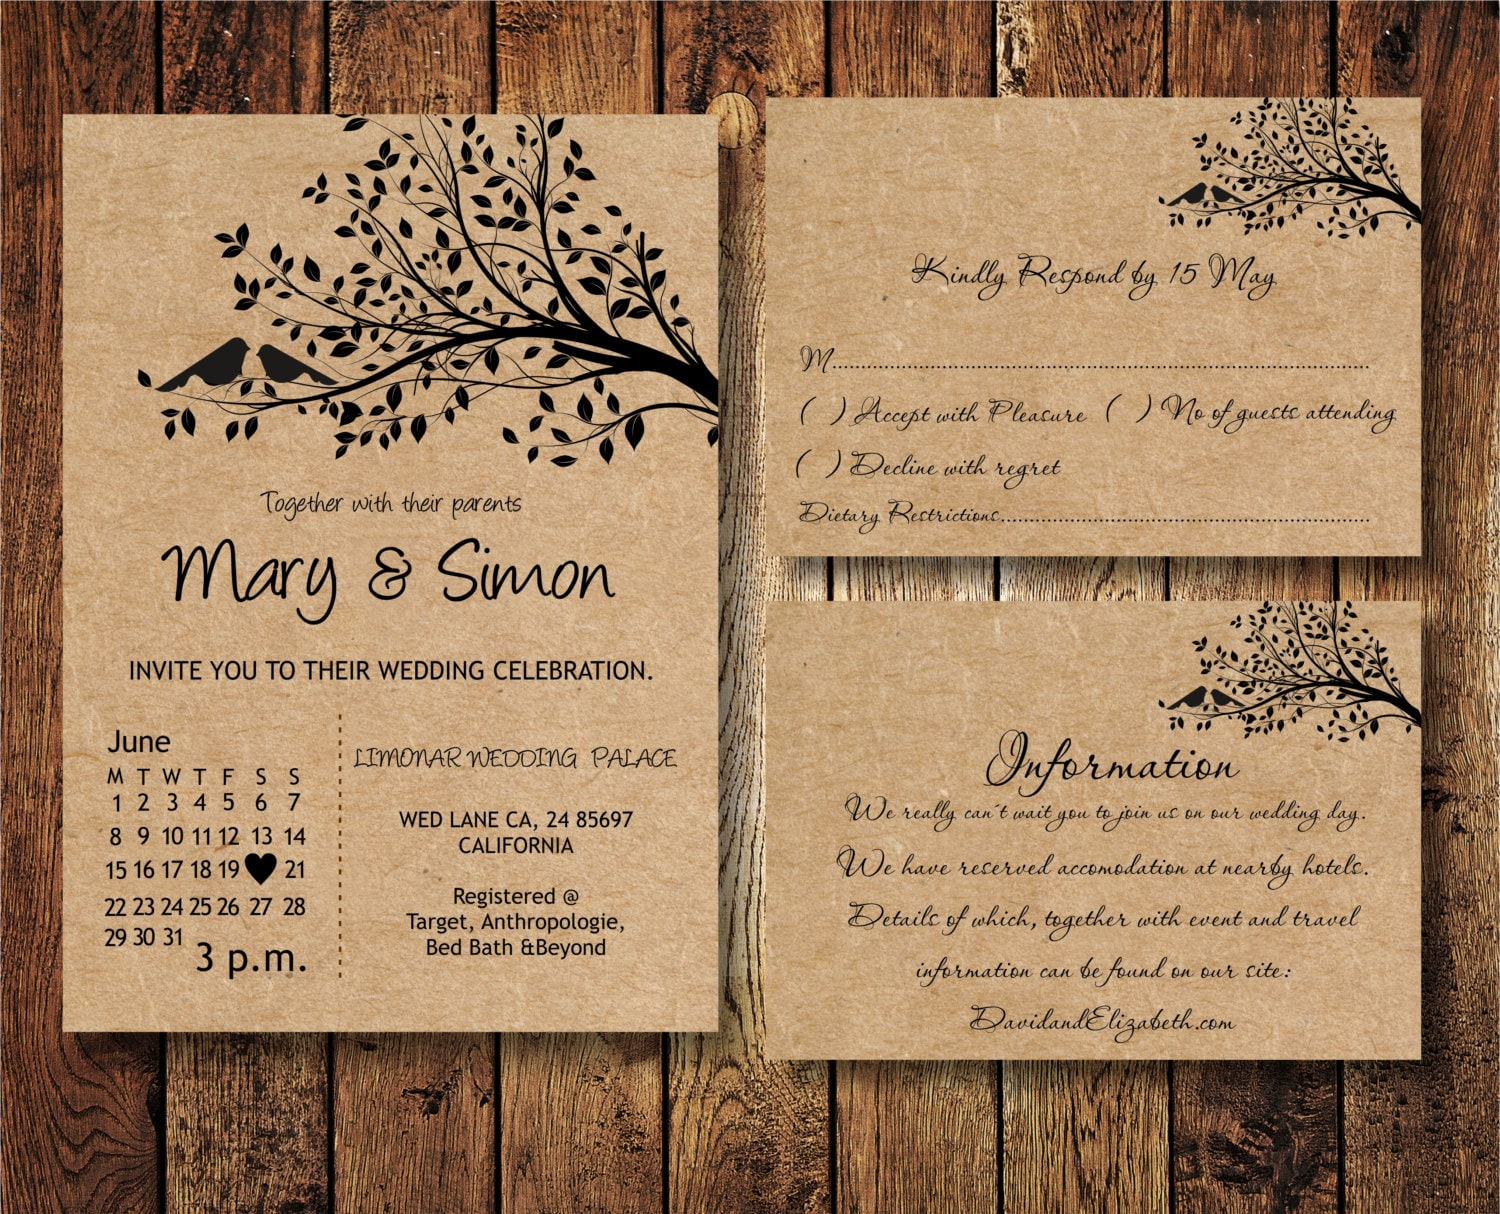 Wedding Invitation Suite Templates: Wedding Invitation Suite Template With Birds On A Tree Kraft